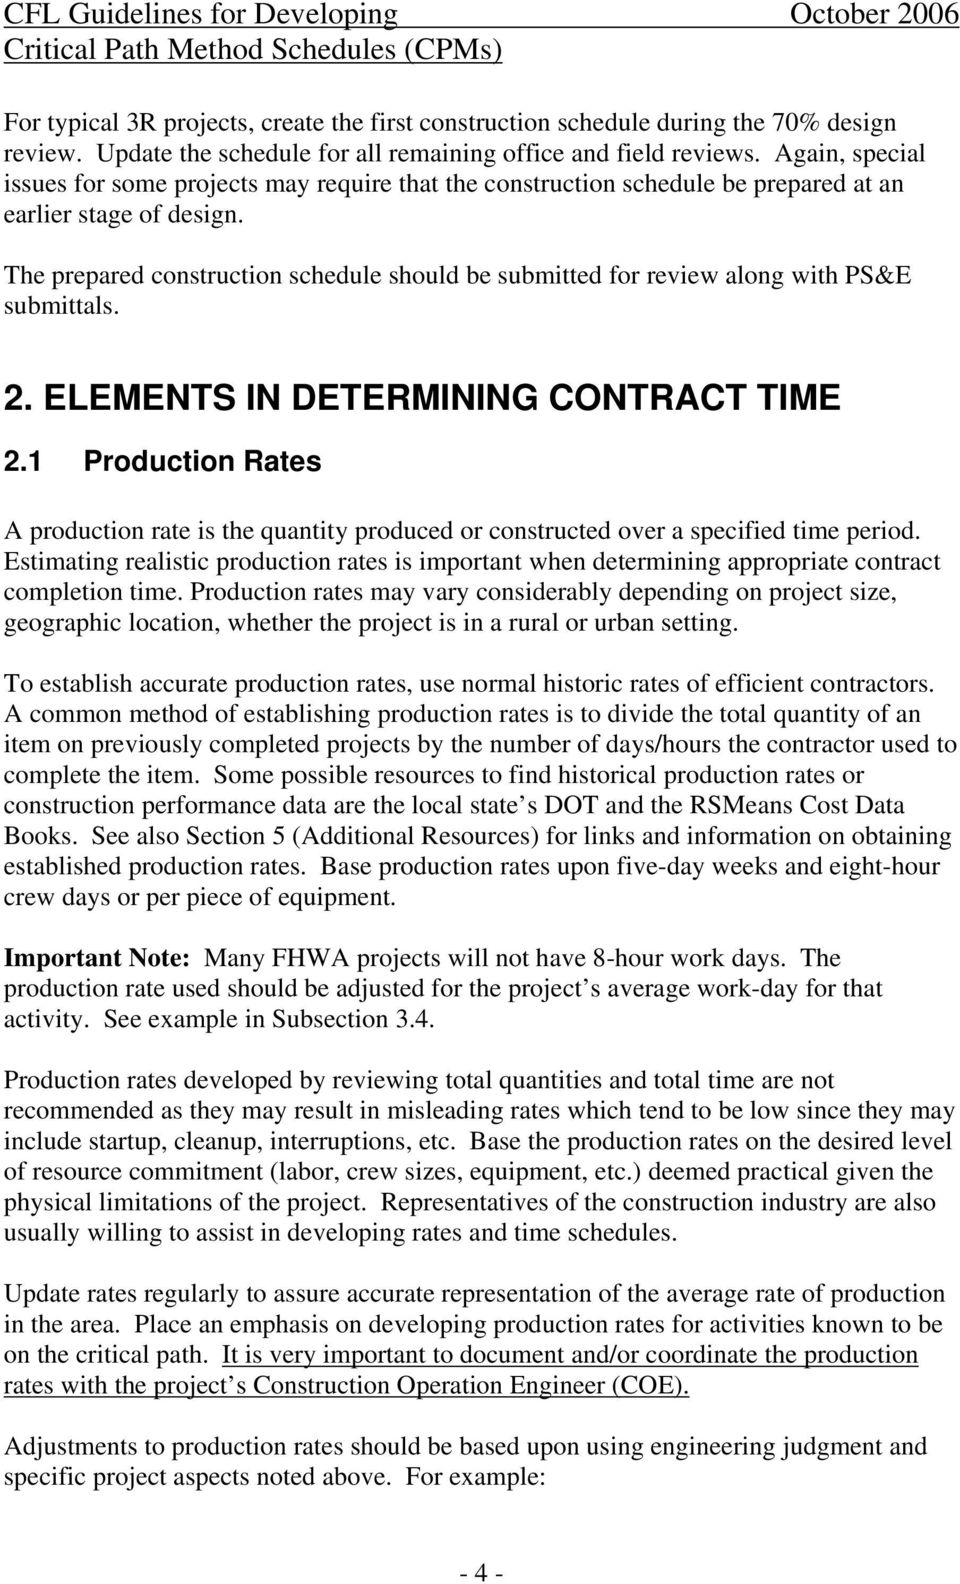 The prepared construction schedule should be submitted for review along with PS&E submittals. 2. ELEMENTS IN DETERMINING CONTRACT TIME 2.